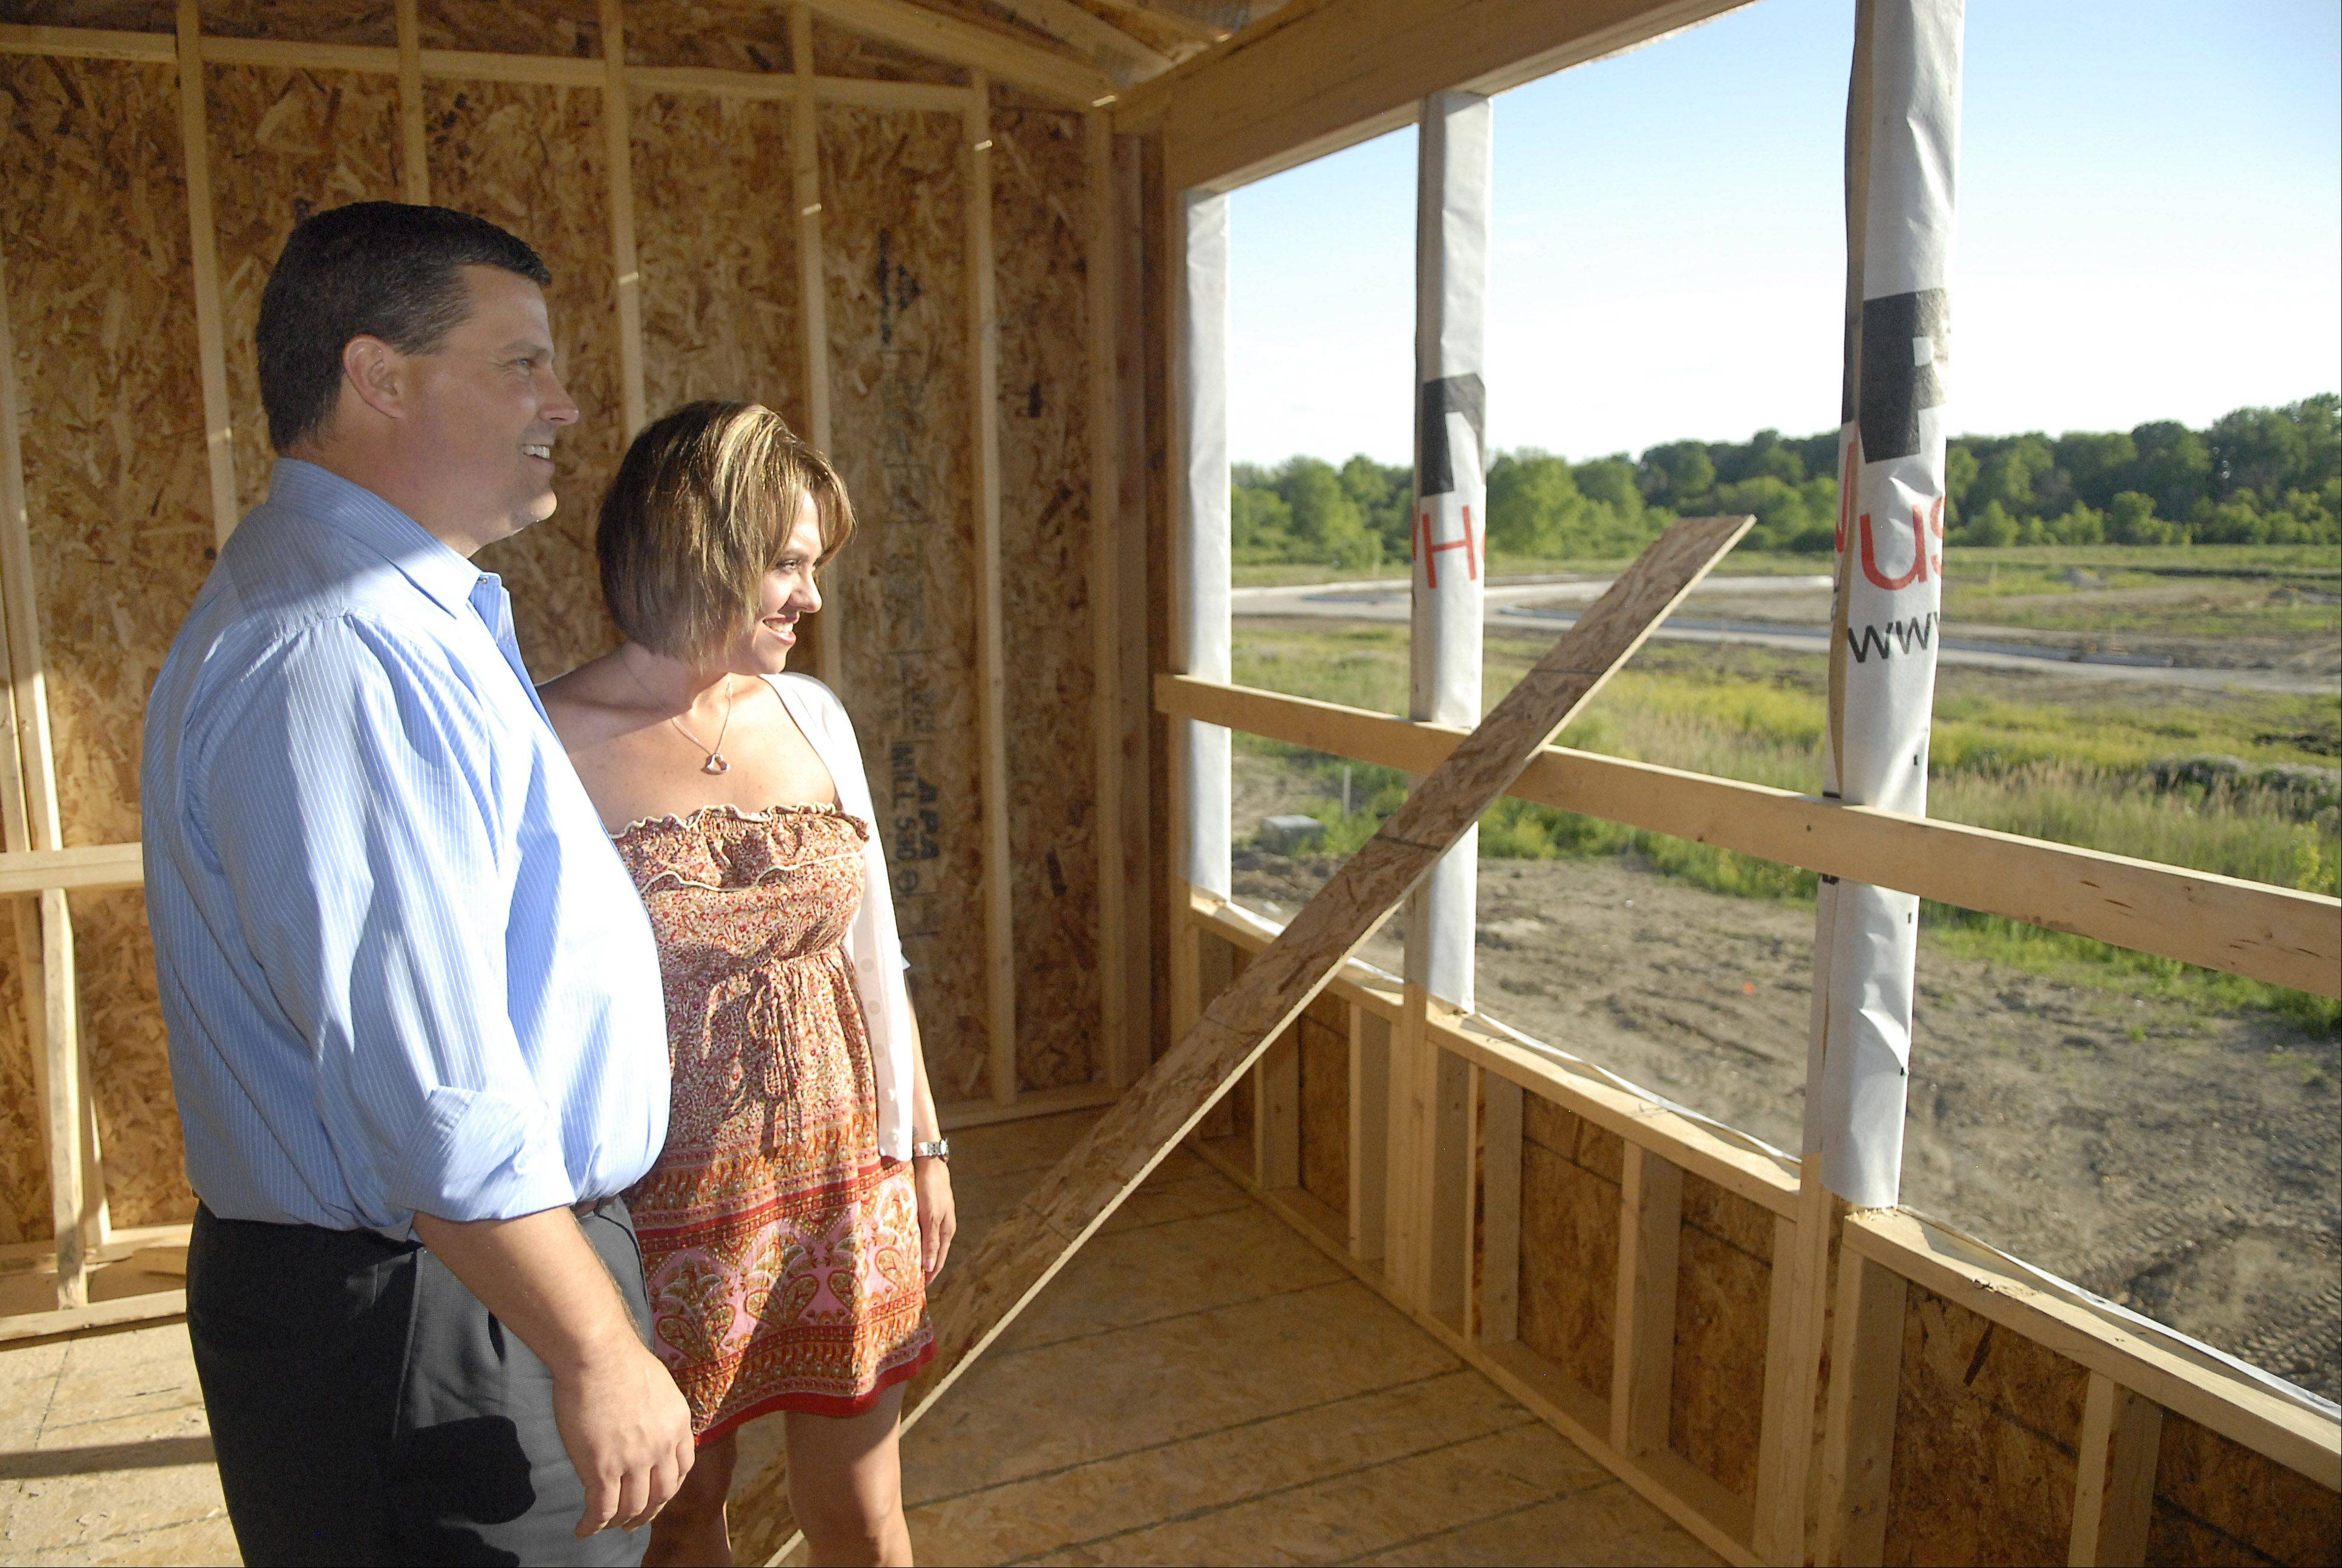 Michelle Lopez and her boyfriend, Peter Truschke, take in the view of their future master bedroom and seating area in the home they are having built in the Winchester Glen subdivision in Carpentersville. They expect it to be completed by August. The view includes a conservation area.